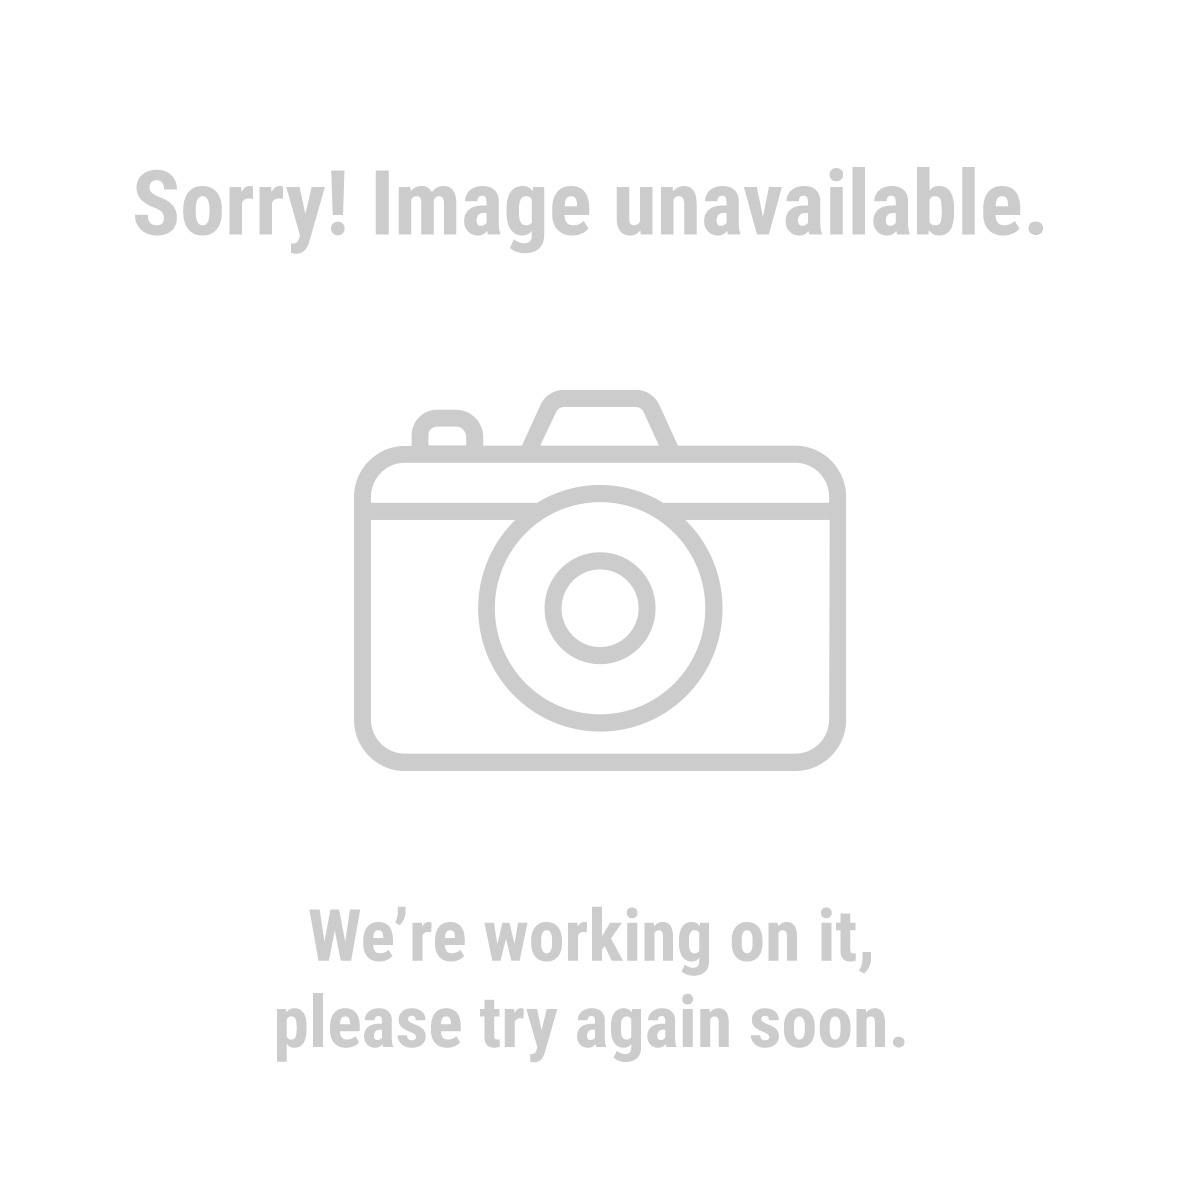 Ooze 97215 60 Piece Radial Tire Patch Kit